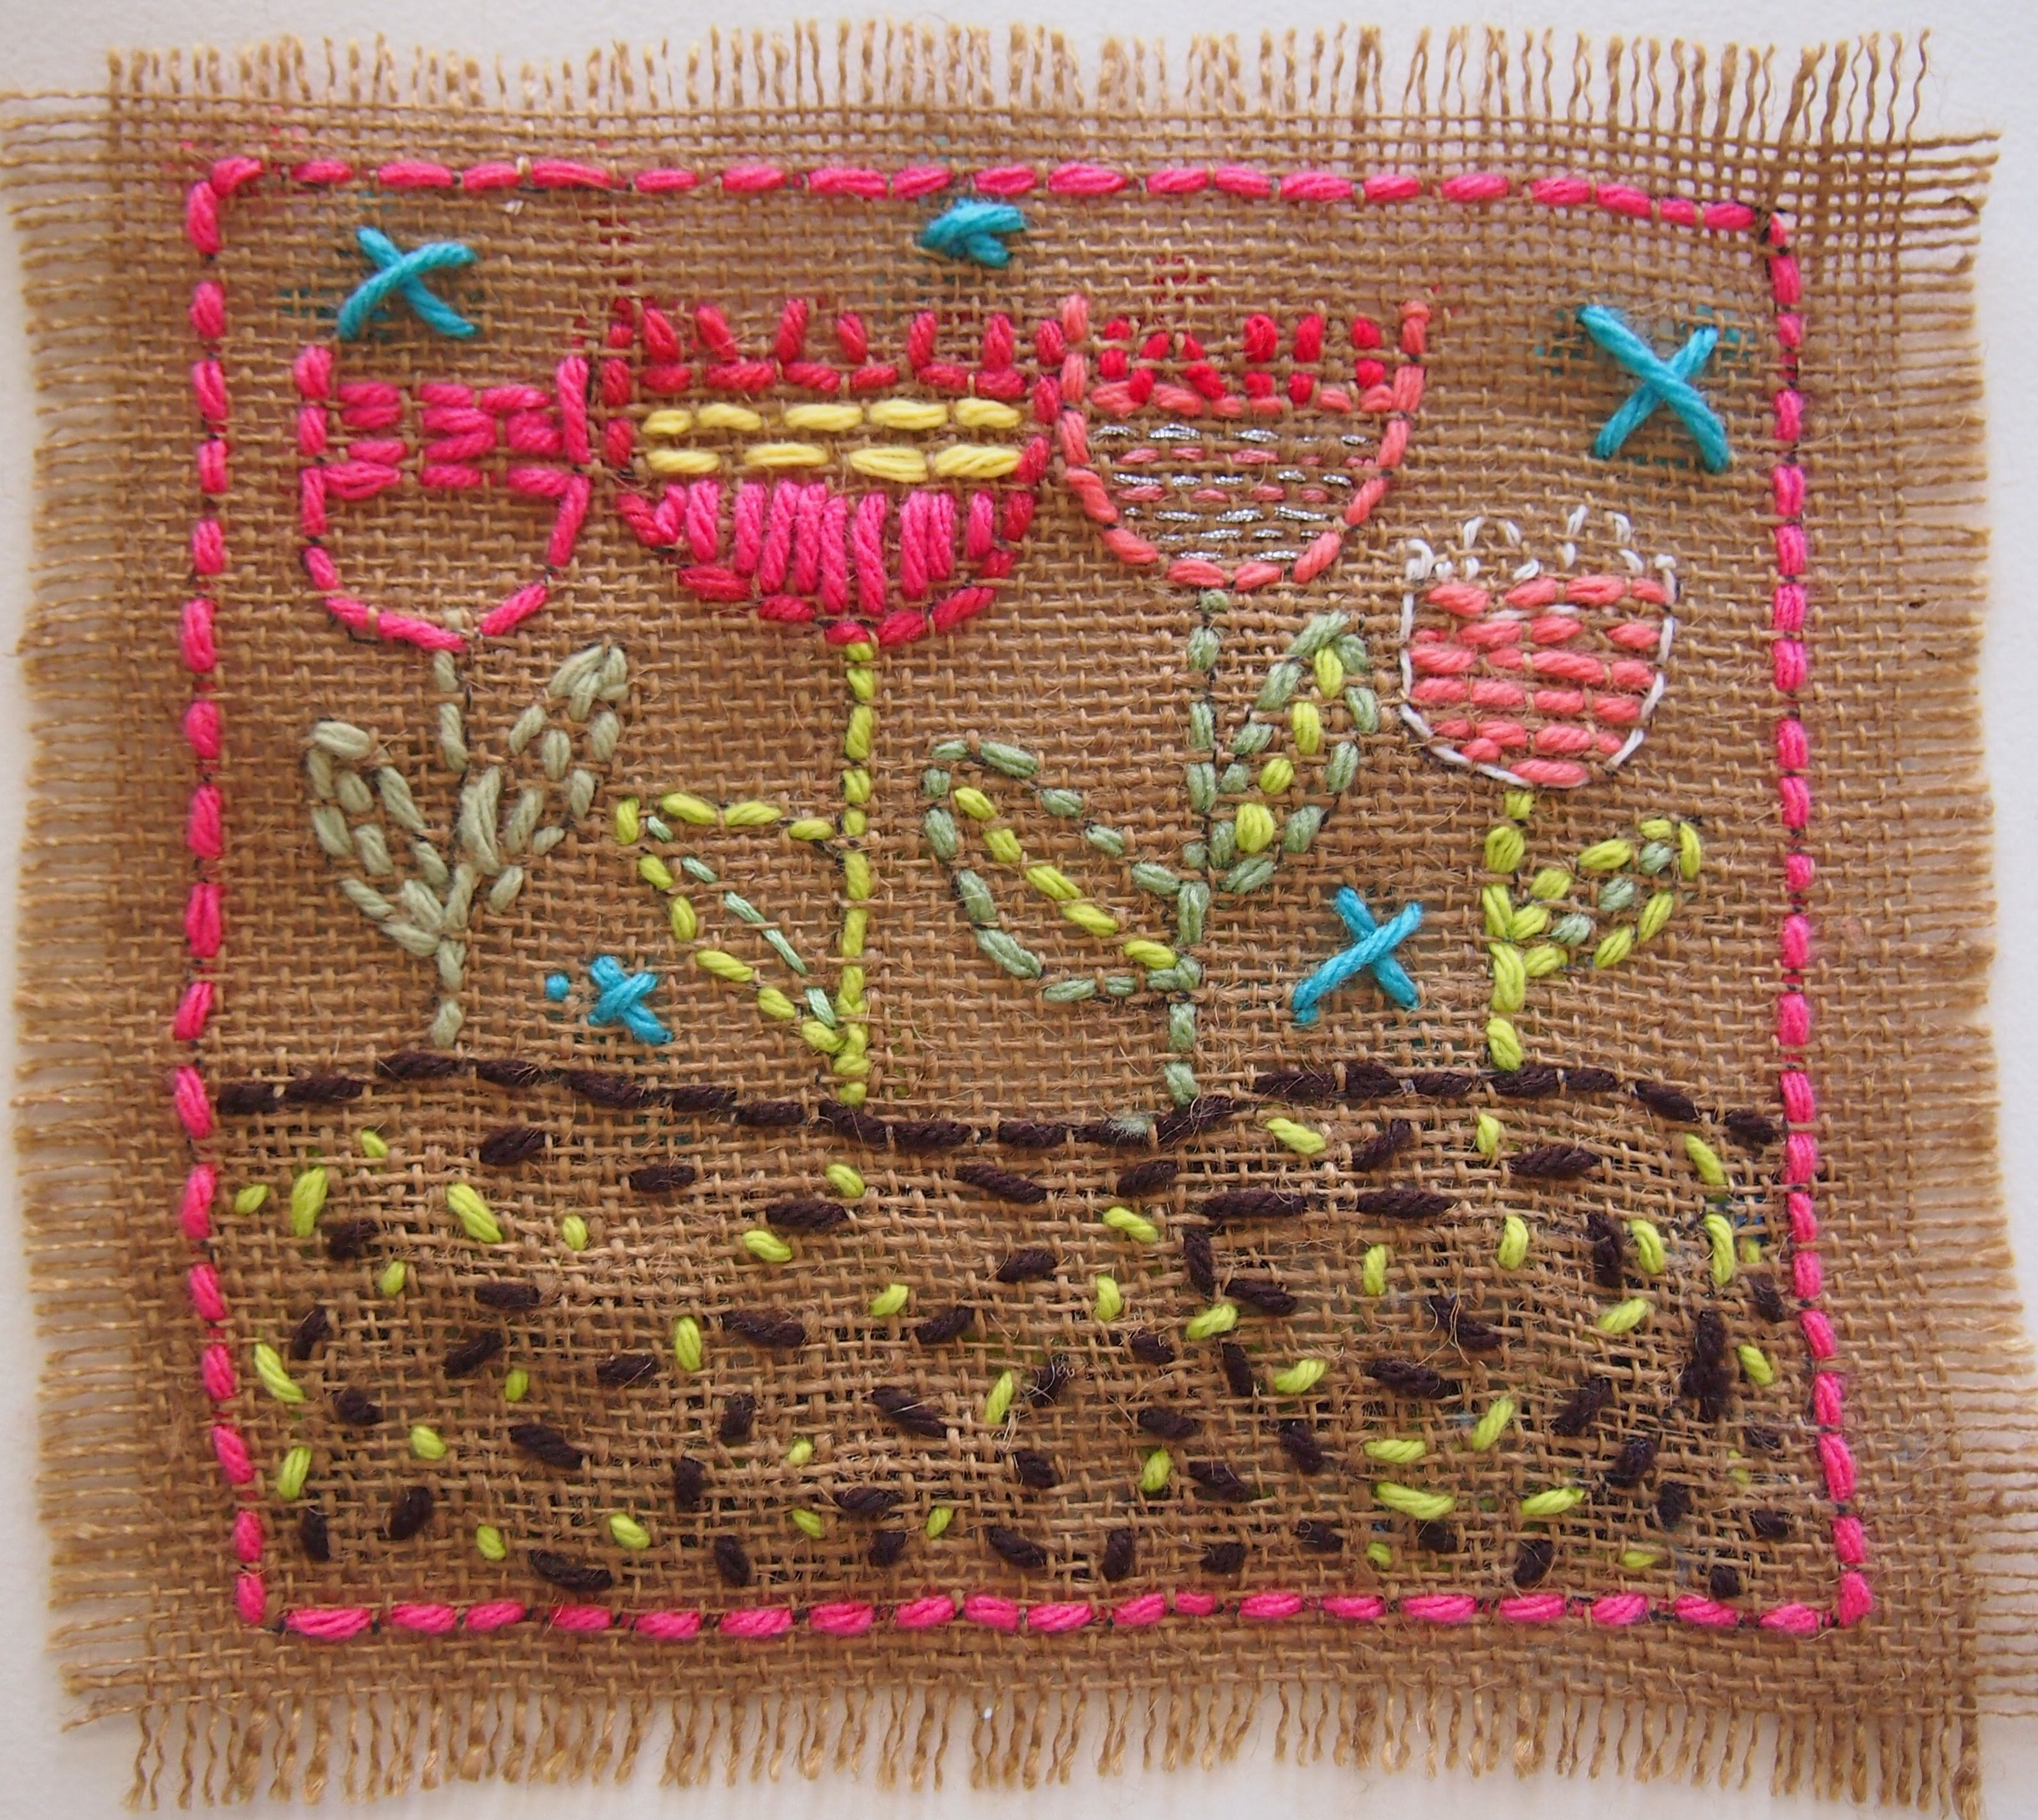 Drawing With String And Wool Children Can Create A Colorful Tapestry Using Their Own Design On